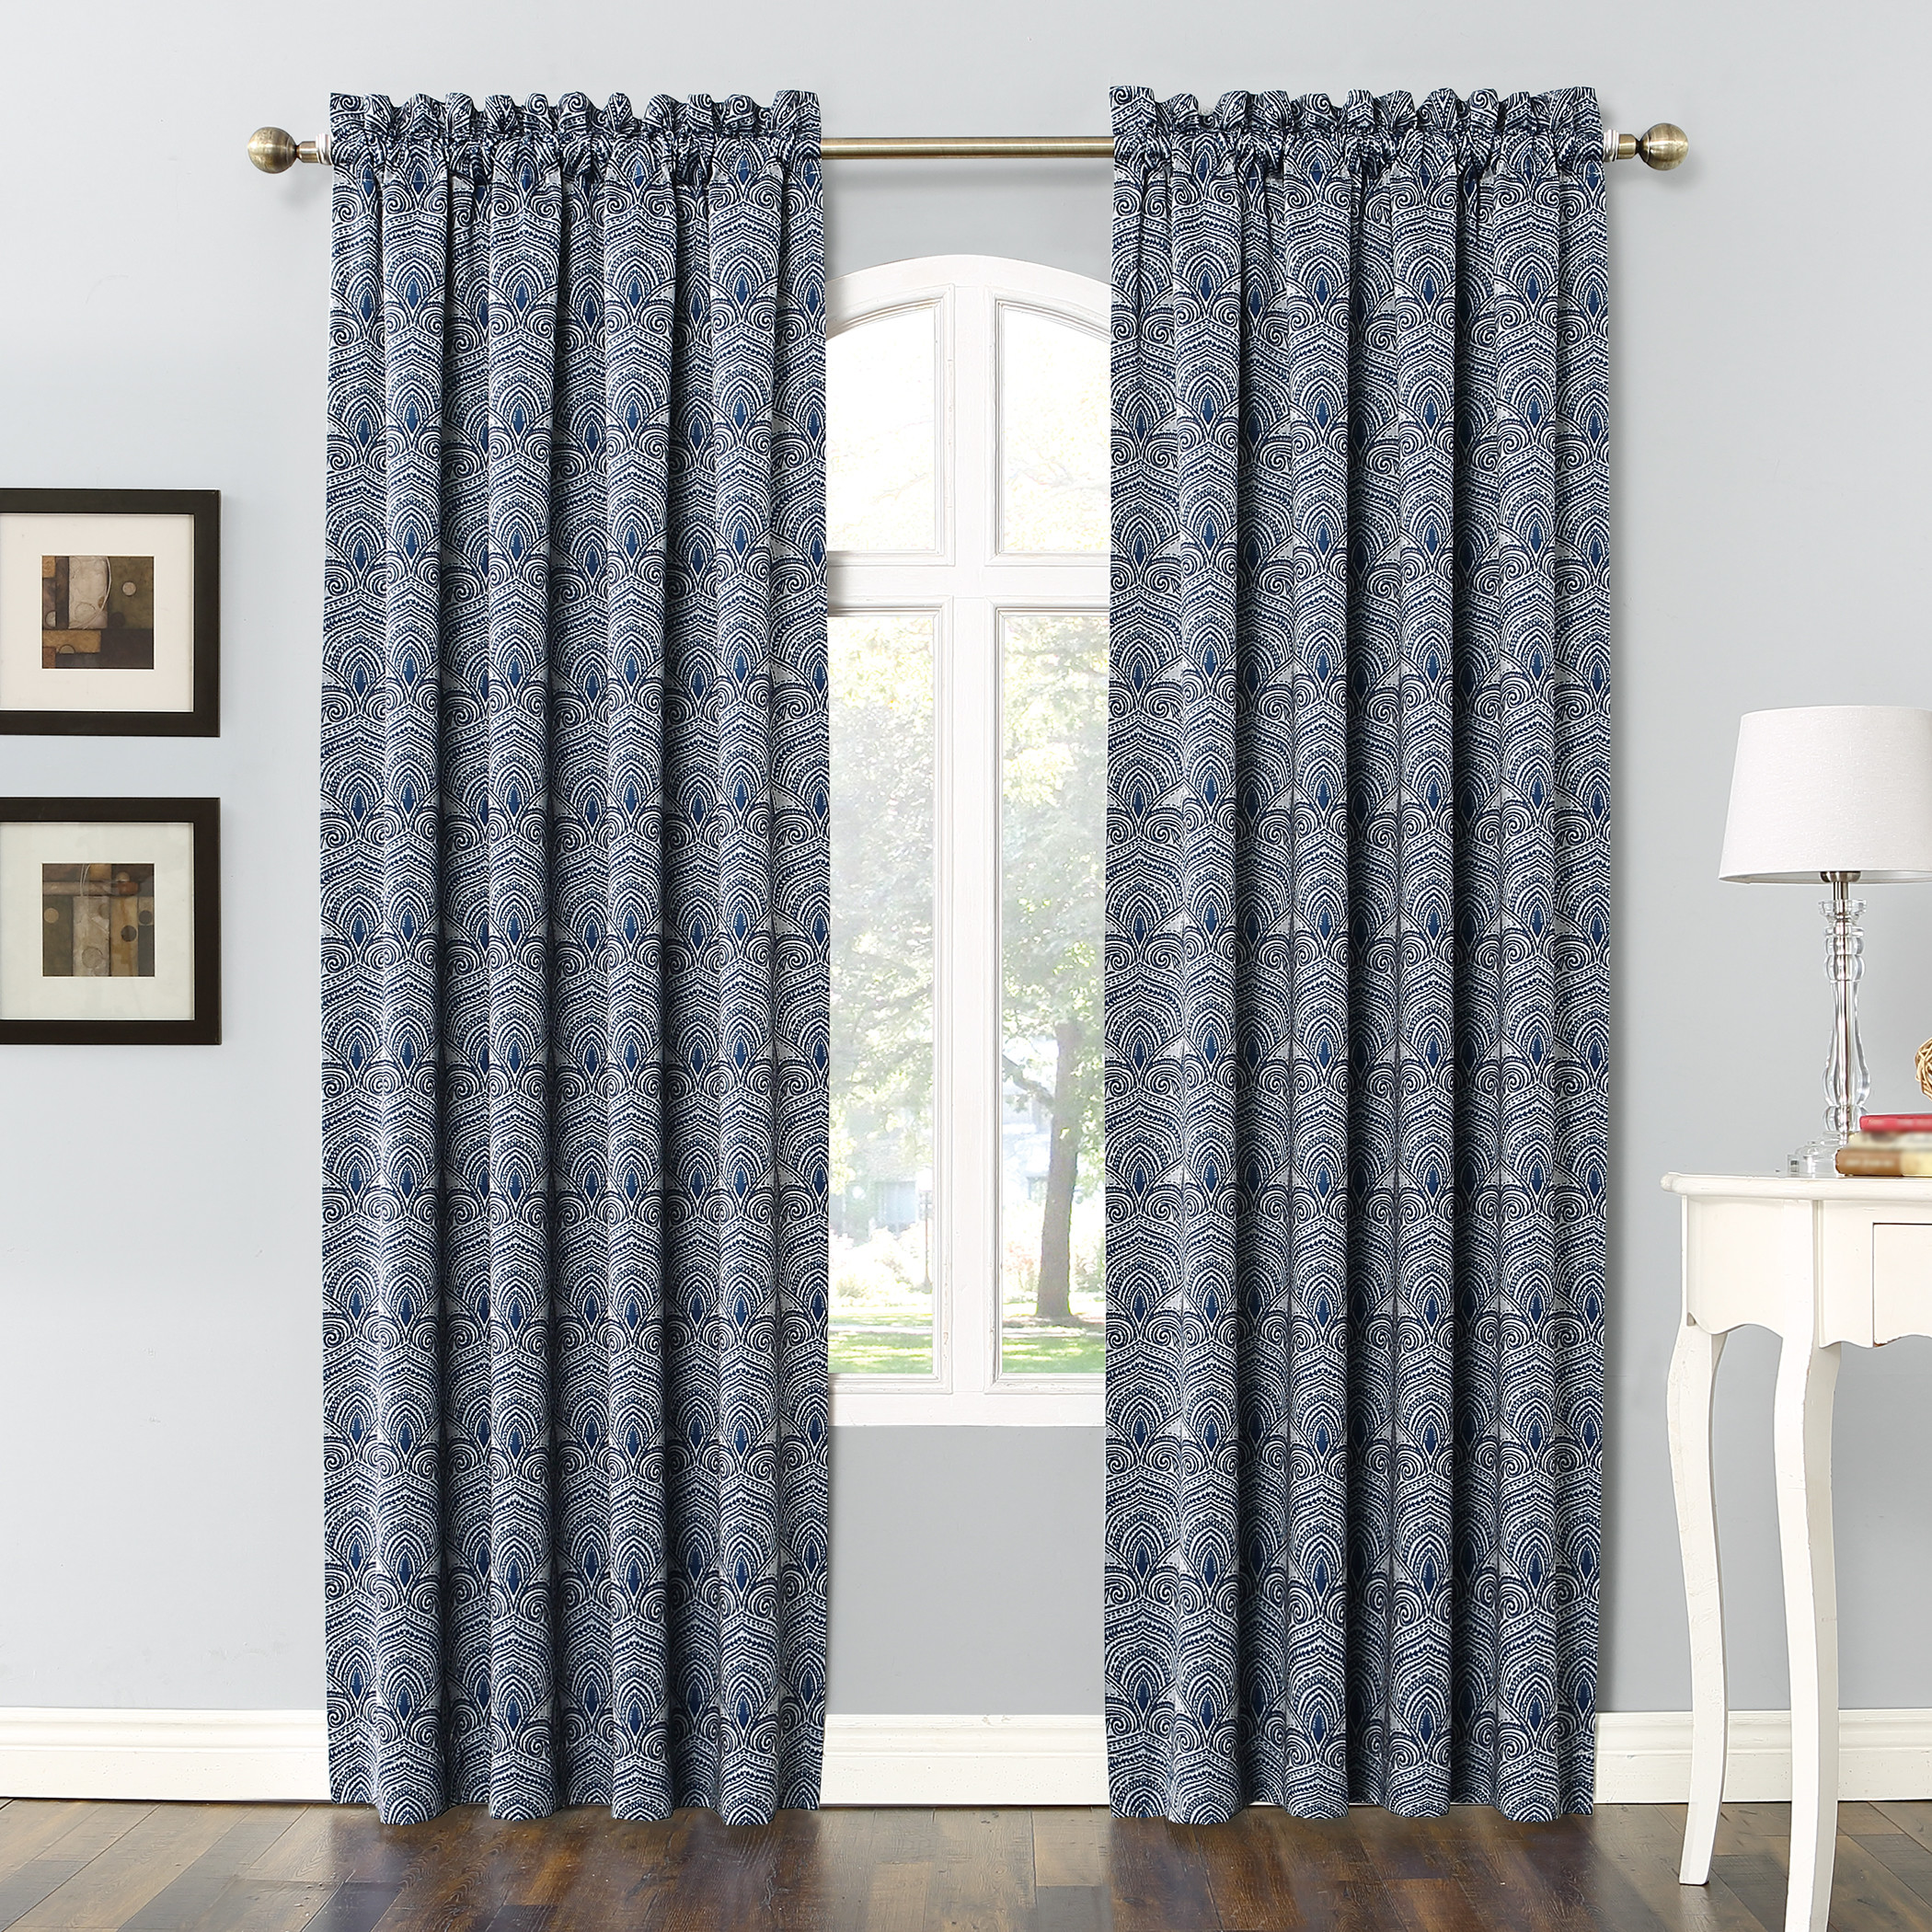 Sun Zero Dmitri Damask Print Room Darkening Rod Pocket Curtain Panel